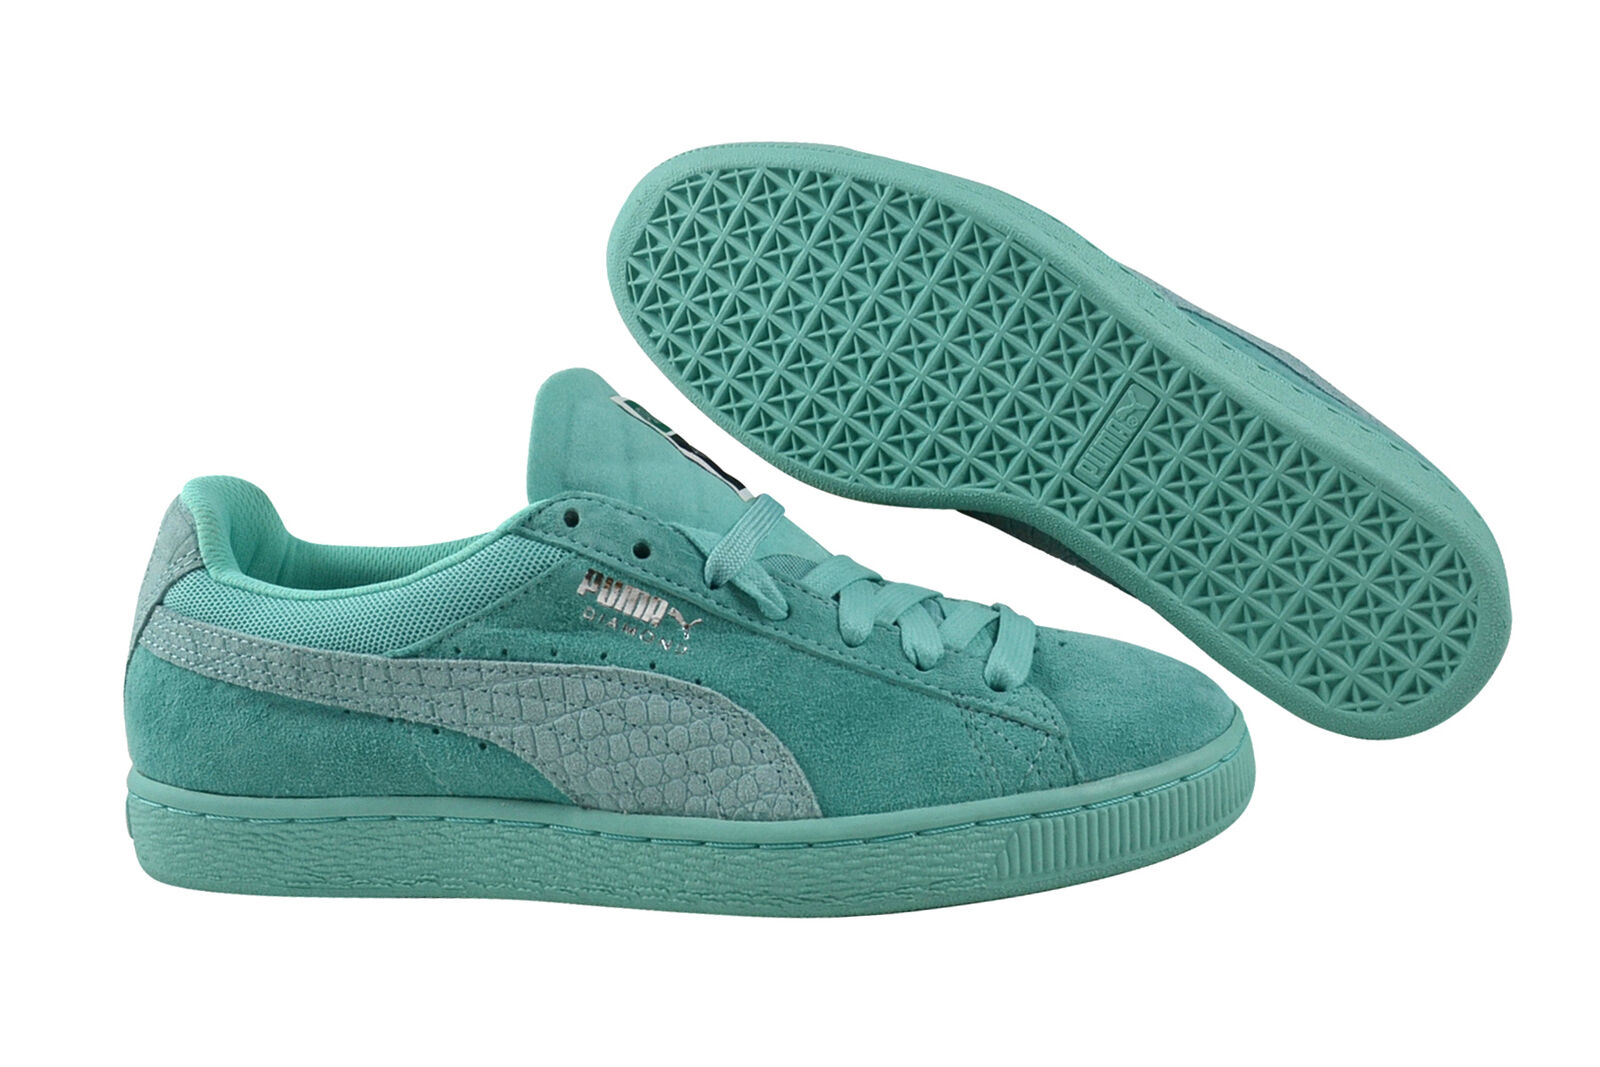 Puma Classic X Diamond Supply aruba Blau Turnschuhe Schuhe blau 363001 02